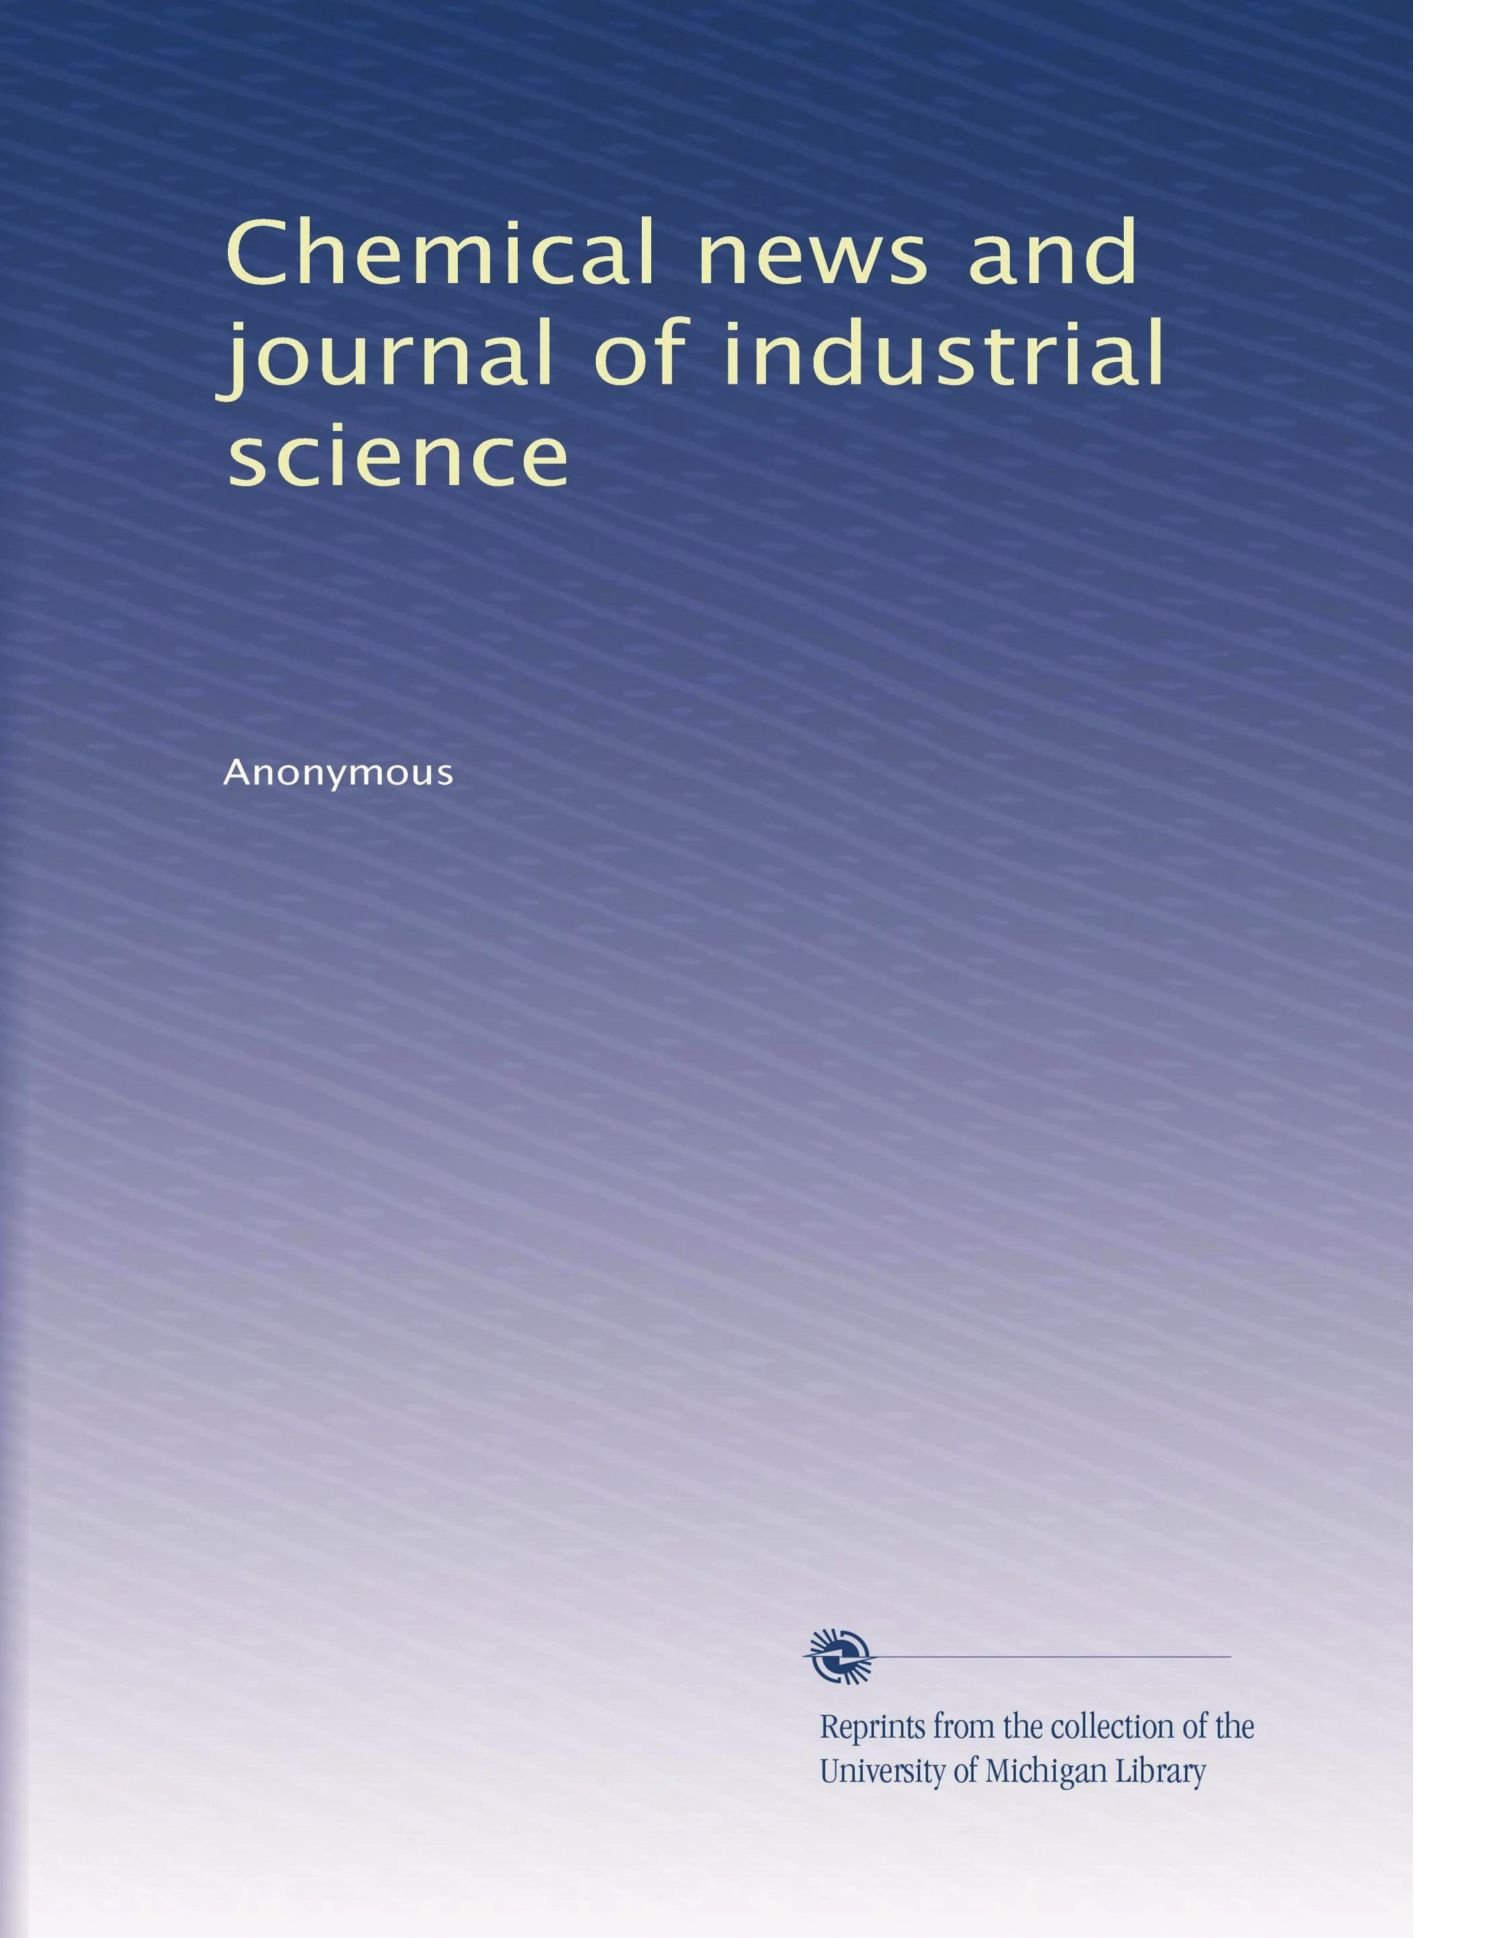 Download Chemical news and journal of industrial science (Volume 67) pdf